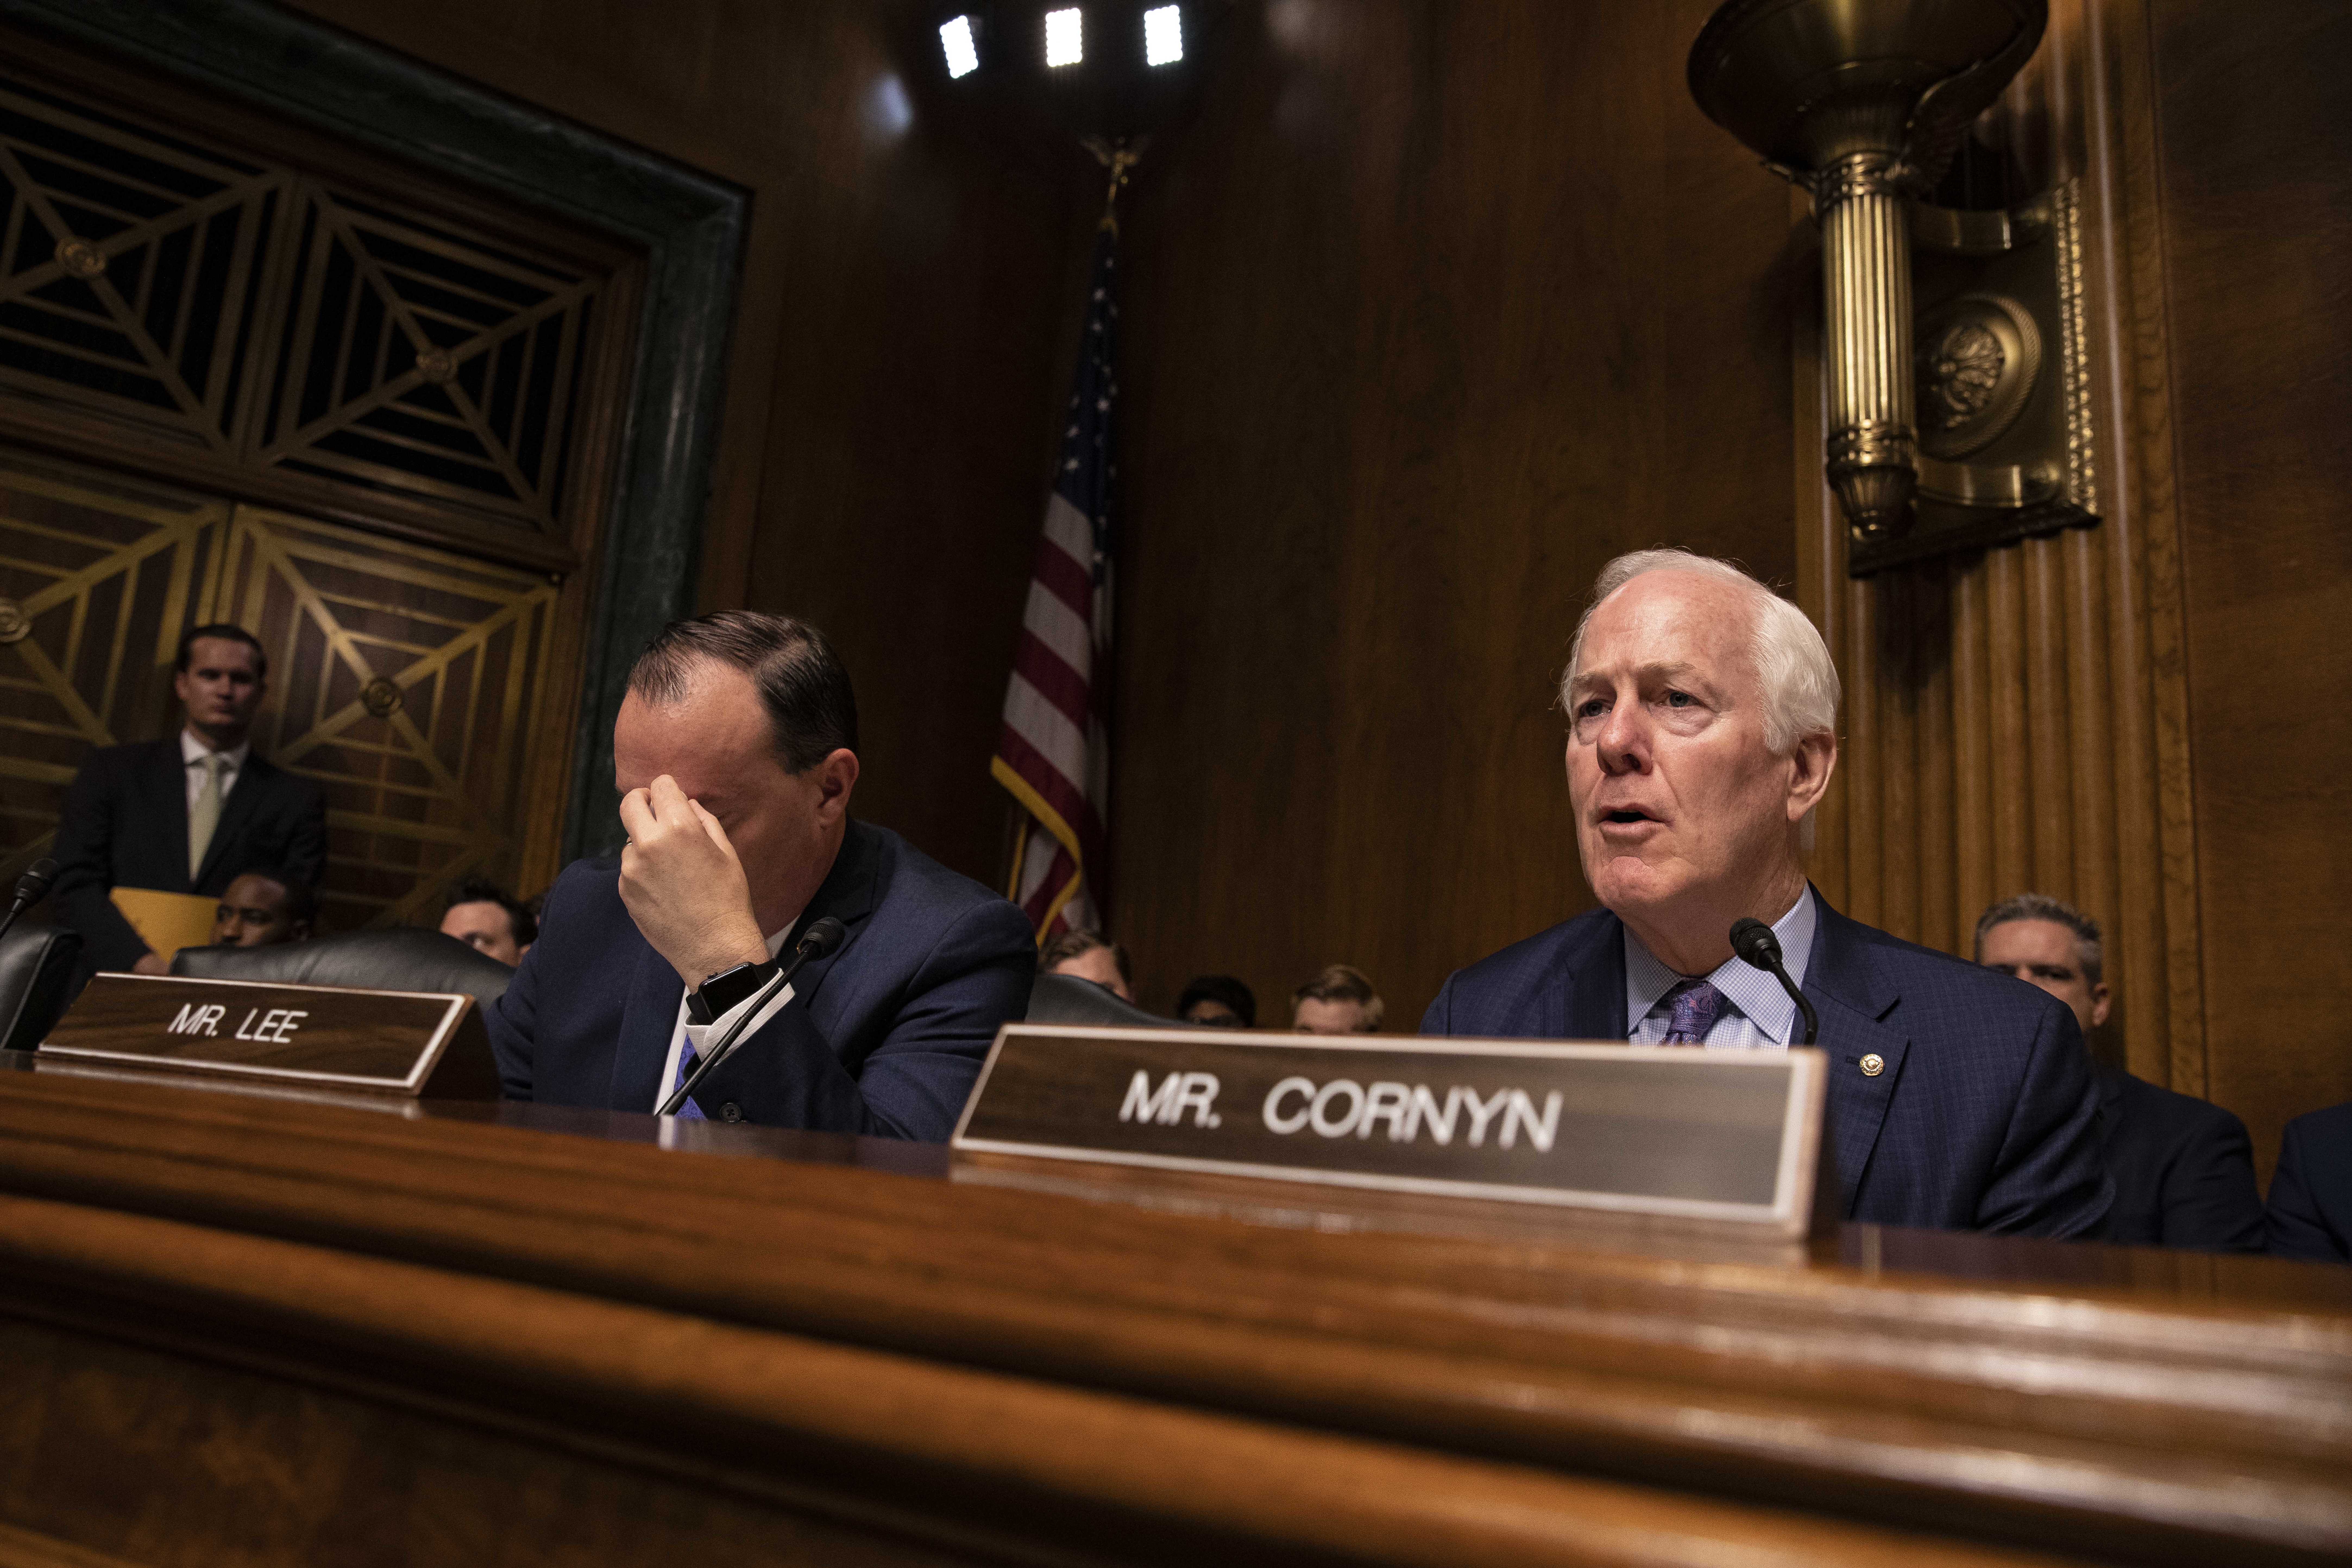 Senator John Cornyn (R-TX) speaks during a Senate Judiciary Committee hearing with Acting Homeland Security Secretary Kevin McAleenan on Capitol Hill on June 11, 2019 in Washington, DC. Members of the committee and the witness discussed the Secure and Protect Act of 2019 and how it would fix the crisis at the U.S. Southern Border. (Photo by Anna Moneymaker/Getty Images)